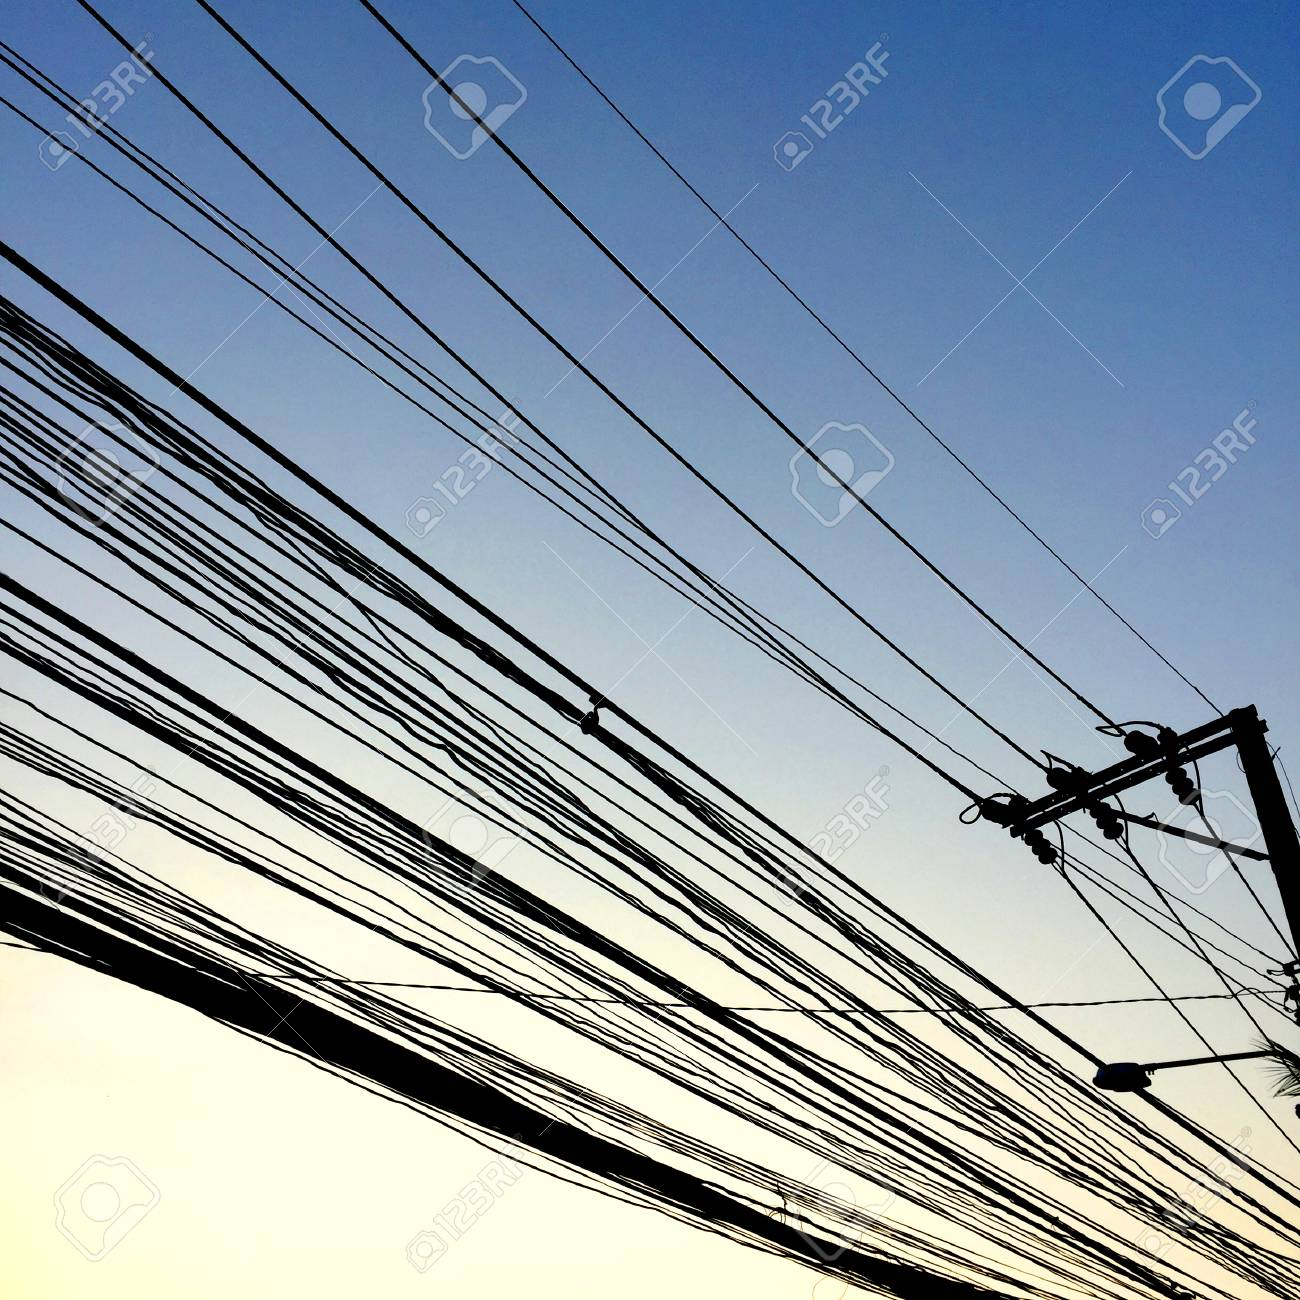 Wire In The Sky Background Great For Any Use. Stock Photo, Picture ...